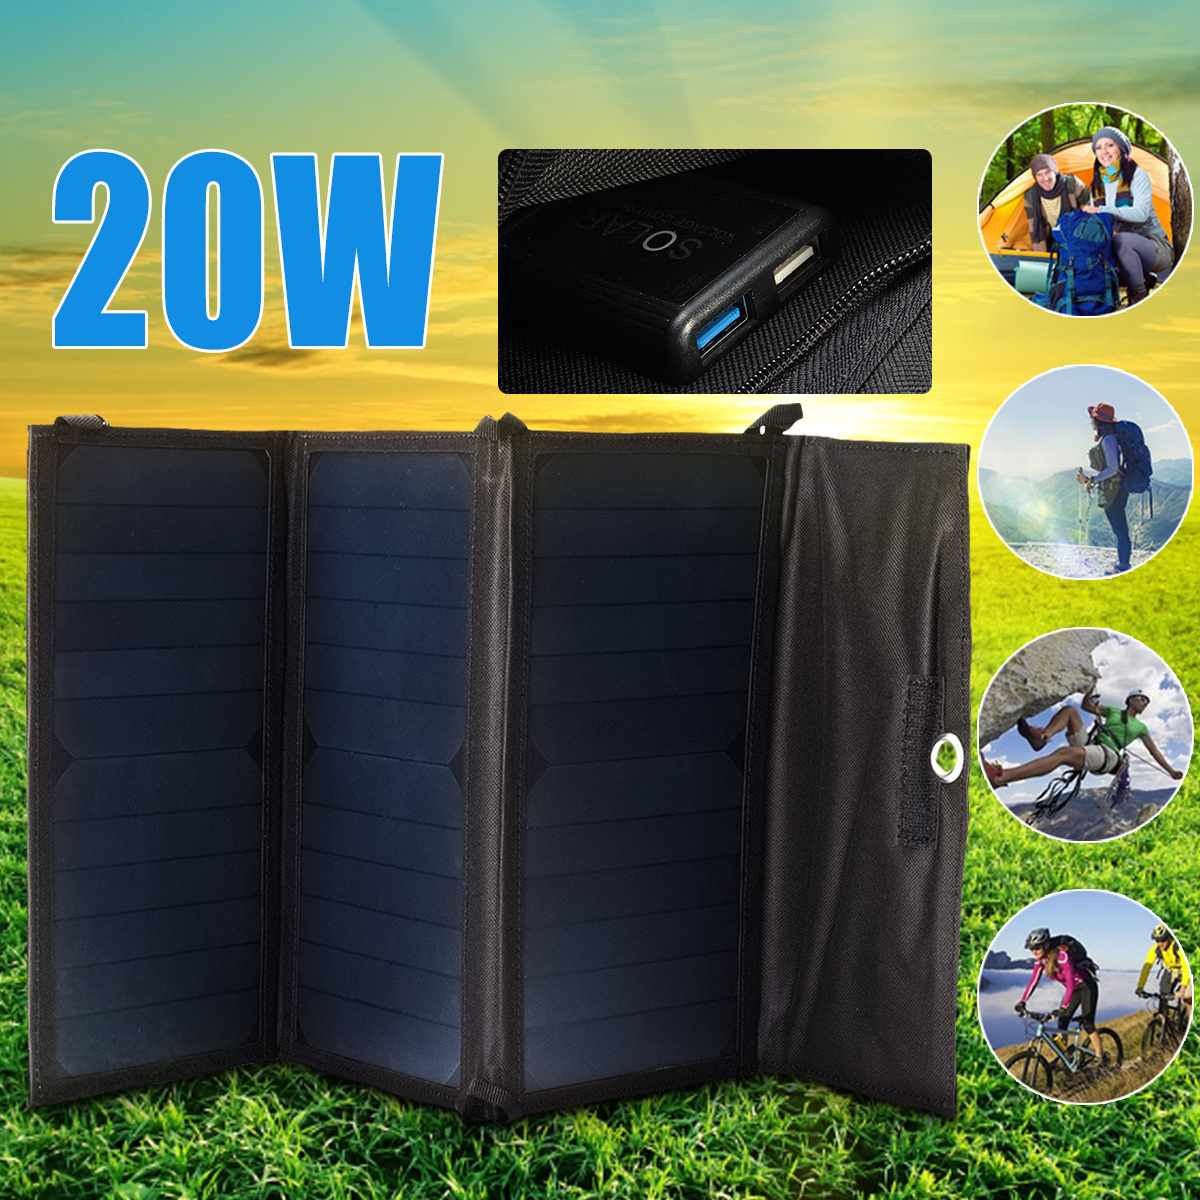 Foldable 20W Solar Charger Folding USB 5v Battery Charger Portable Waterproof Solar Panel External Battery For Outdoor CampingFoldable 20W Solar Charger Folding USB 5v Battery Charger Portable Waterproof Solar Panel External Battery For Outdoor Camping